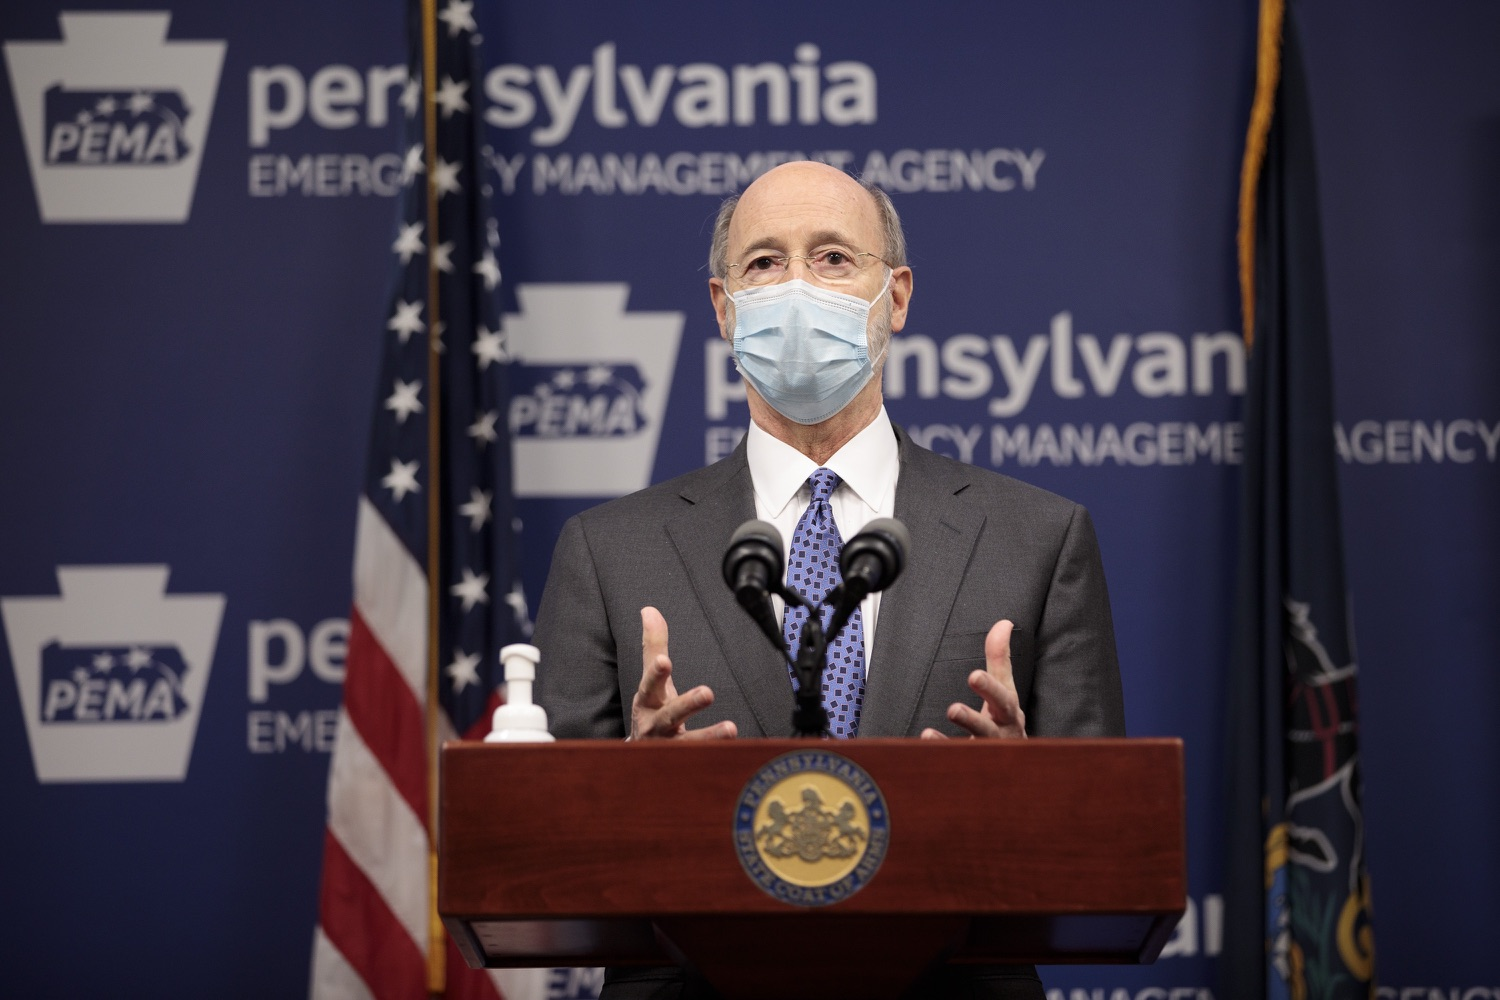 """<a href=""""https://filesource.wostreaming.net/commonwealthofpa/photo/18472_gov_vaccine_dz_14.jpg"""" target=""""_blank"""">⇣Download Photo<br></a>Pennsylvania Governor Tom Wolf speaks at the press conference.  The commonwealths COVID-19 vaccination distribution plan was designed to be fluid and flexible to meet guidance and recommendations from the federal government. Today, Governor Tom Wolf and Secretary of Health Dr. Rachel Levine announced the fourth version of the plan, detailing the updates and how the state is working to ensure safe, swift implementation. Harrisburg, PA  January 8, 2021"""